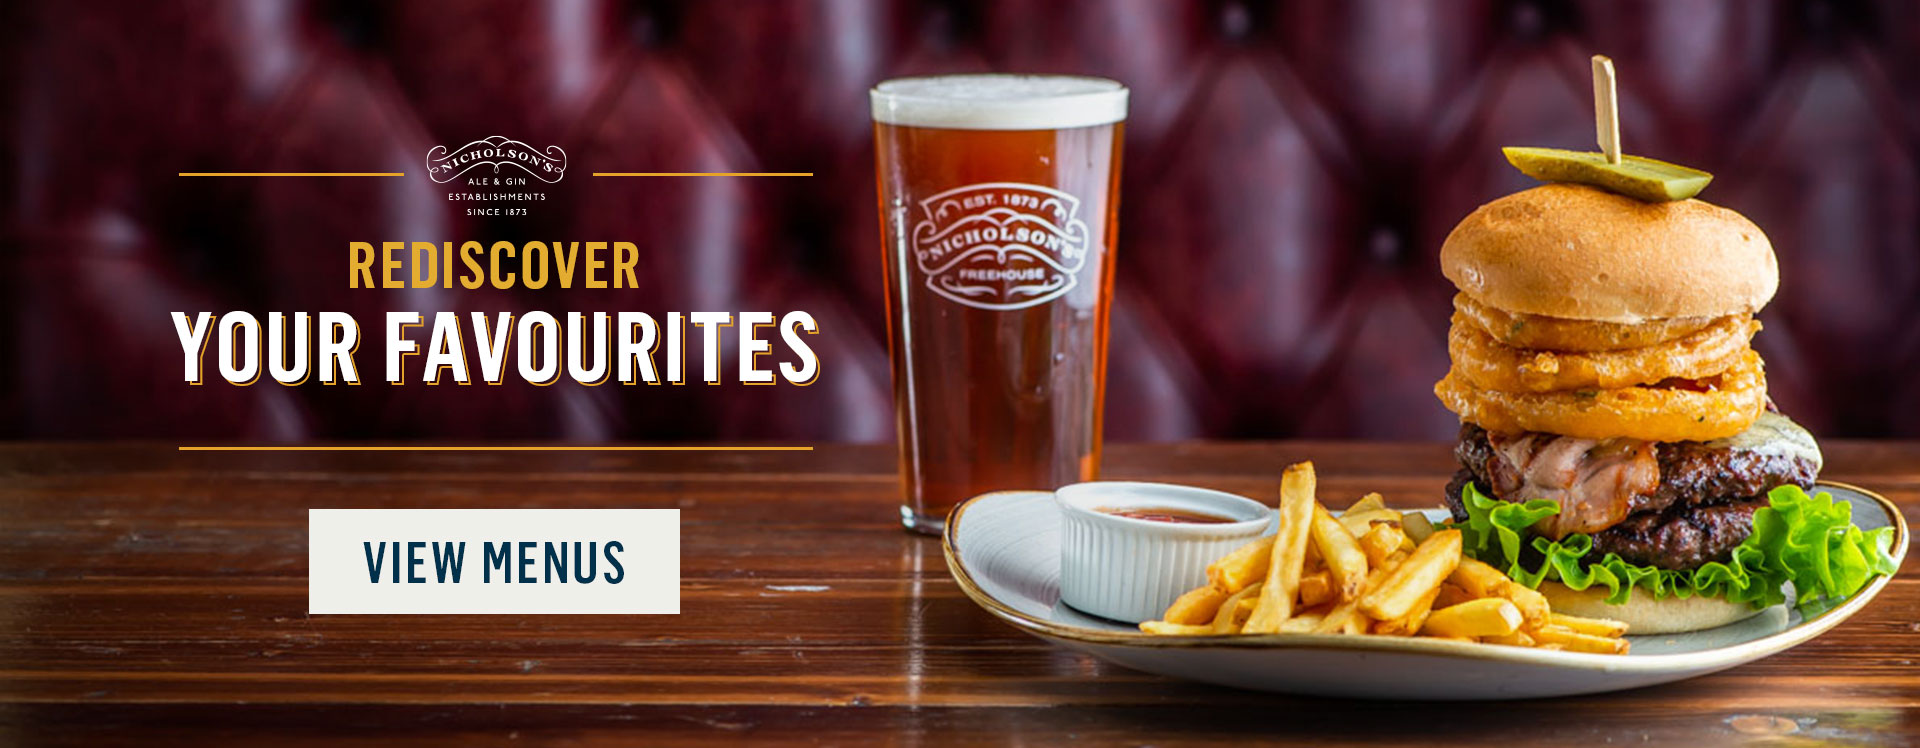 Rediscover your favourites at The Crown Liquor Saloon